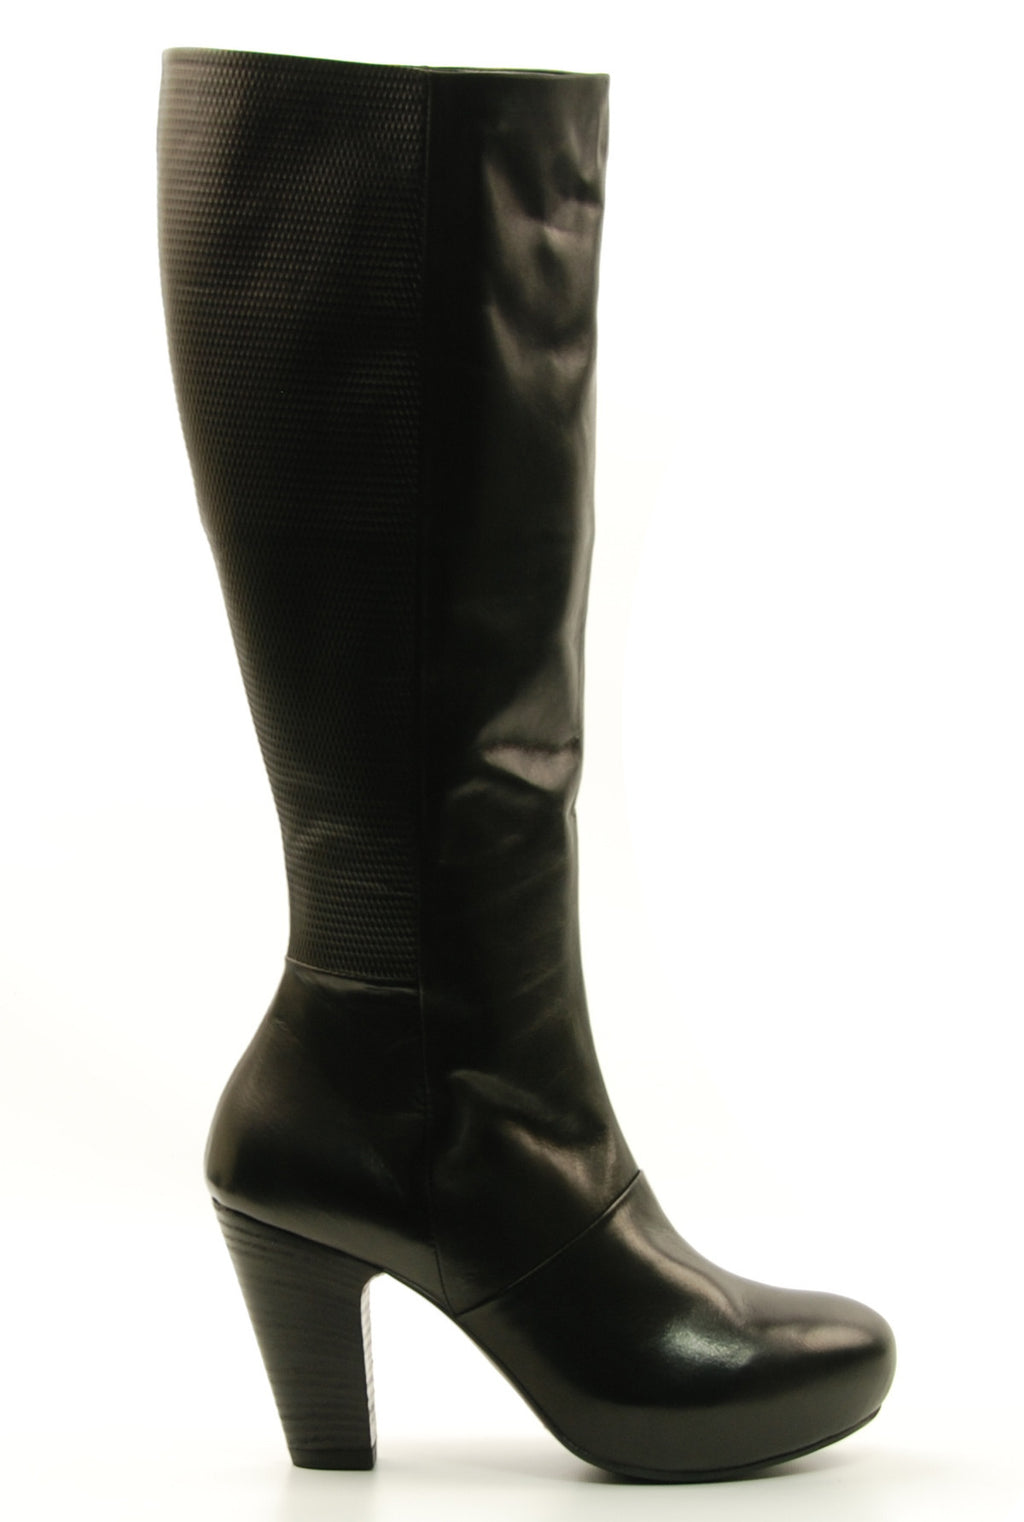 Vic by Vic Matie Stivale Omnia 9809 Tall Black Heeled Boot